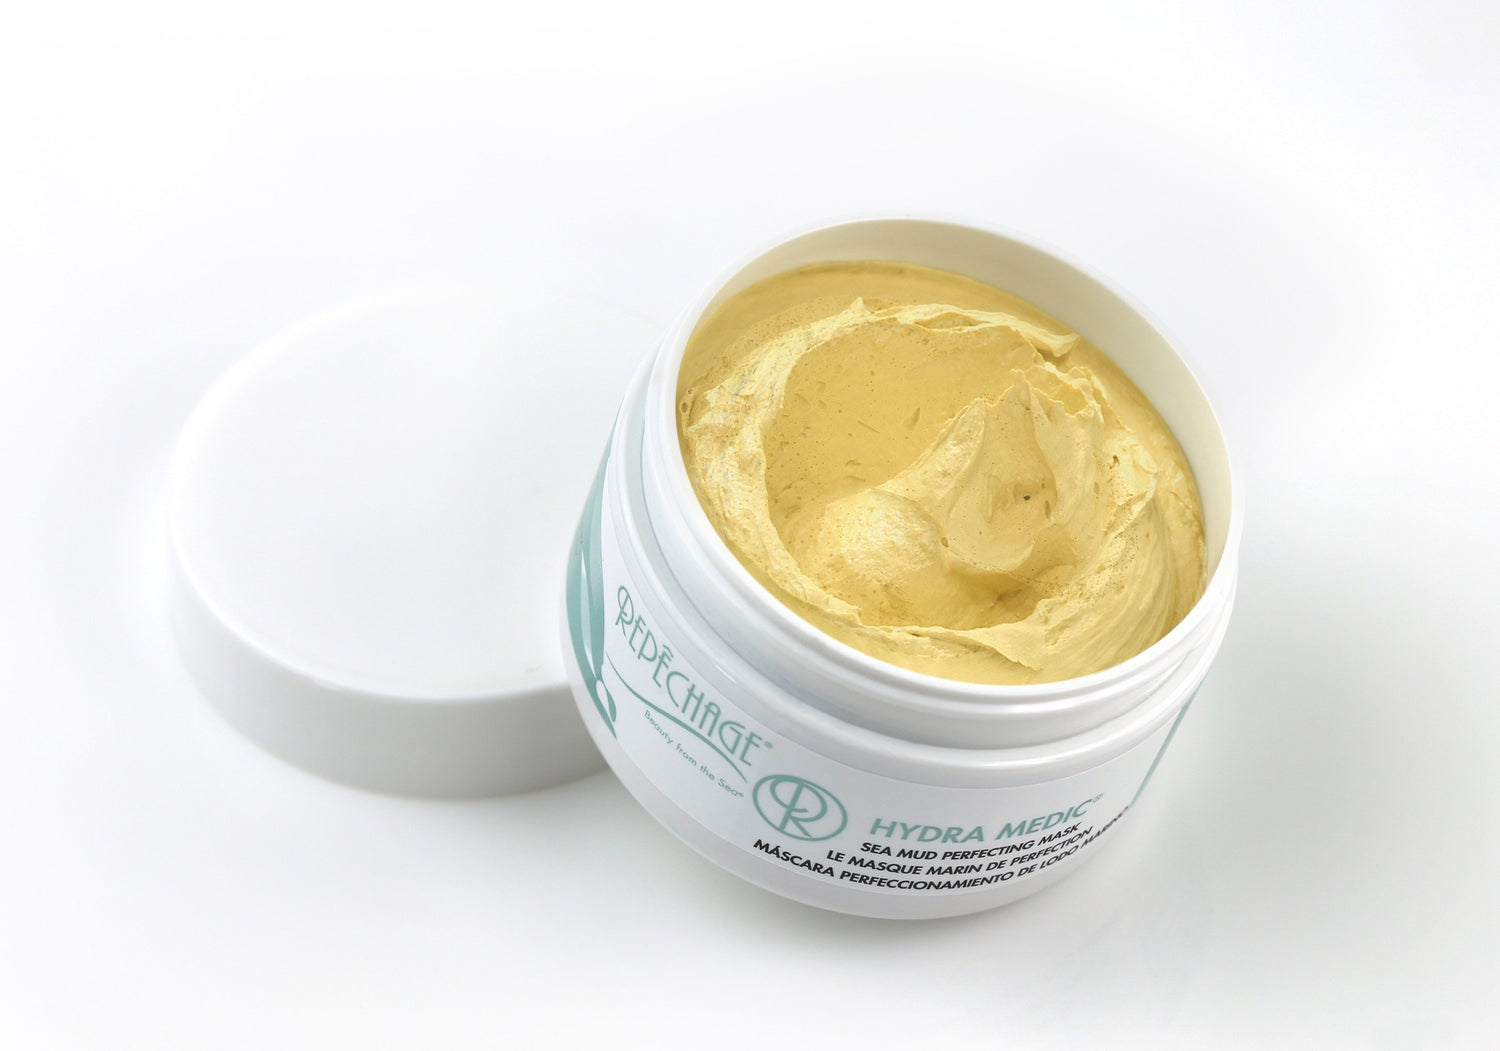 Hydra Medic® Sea Mud Perfecting Mask